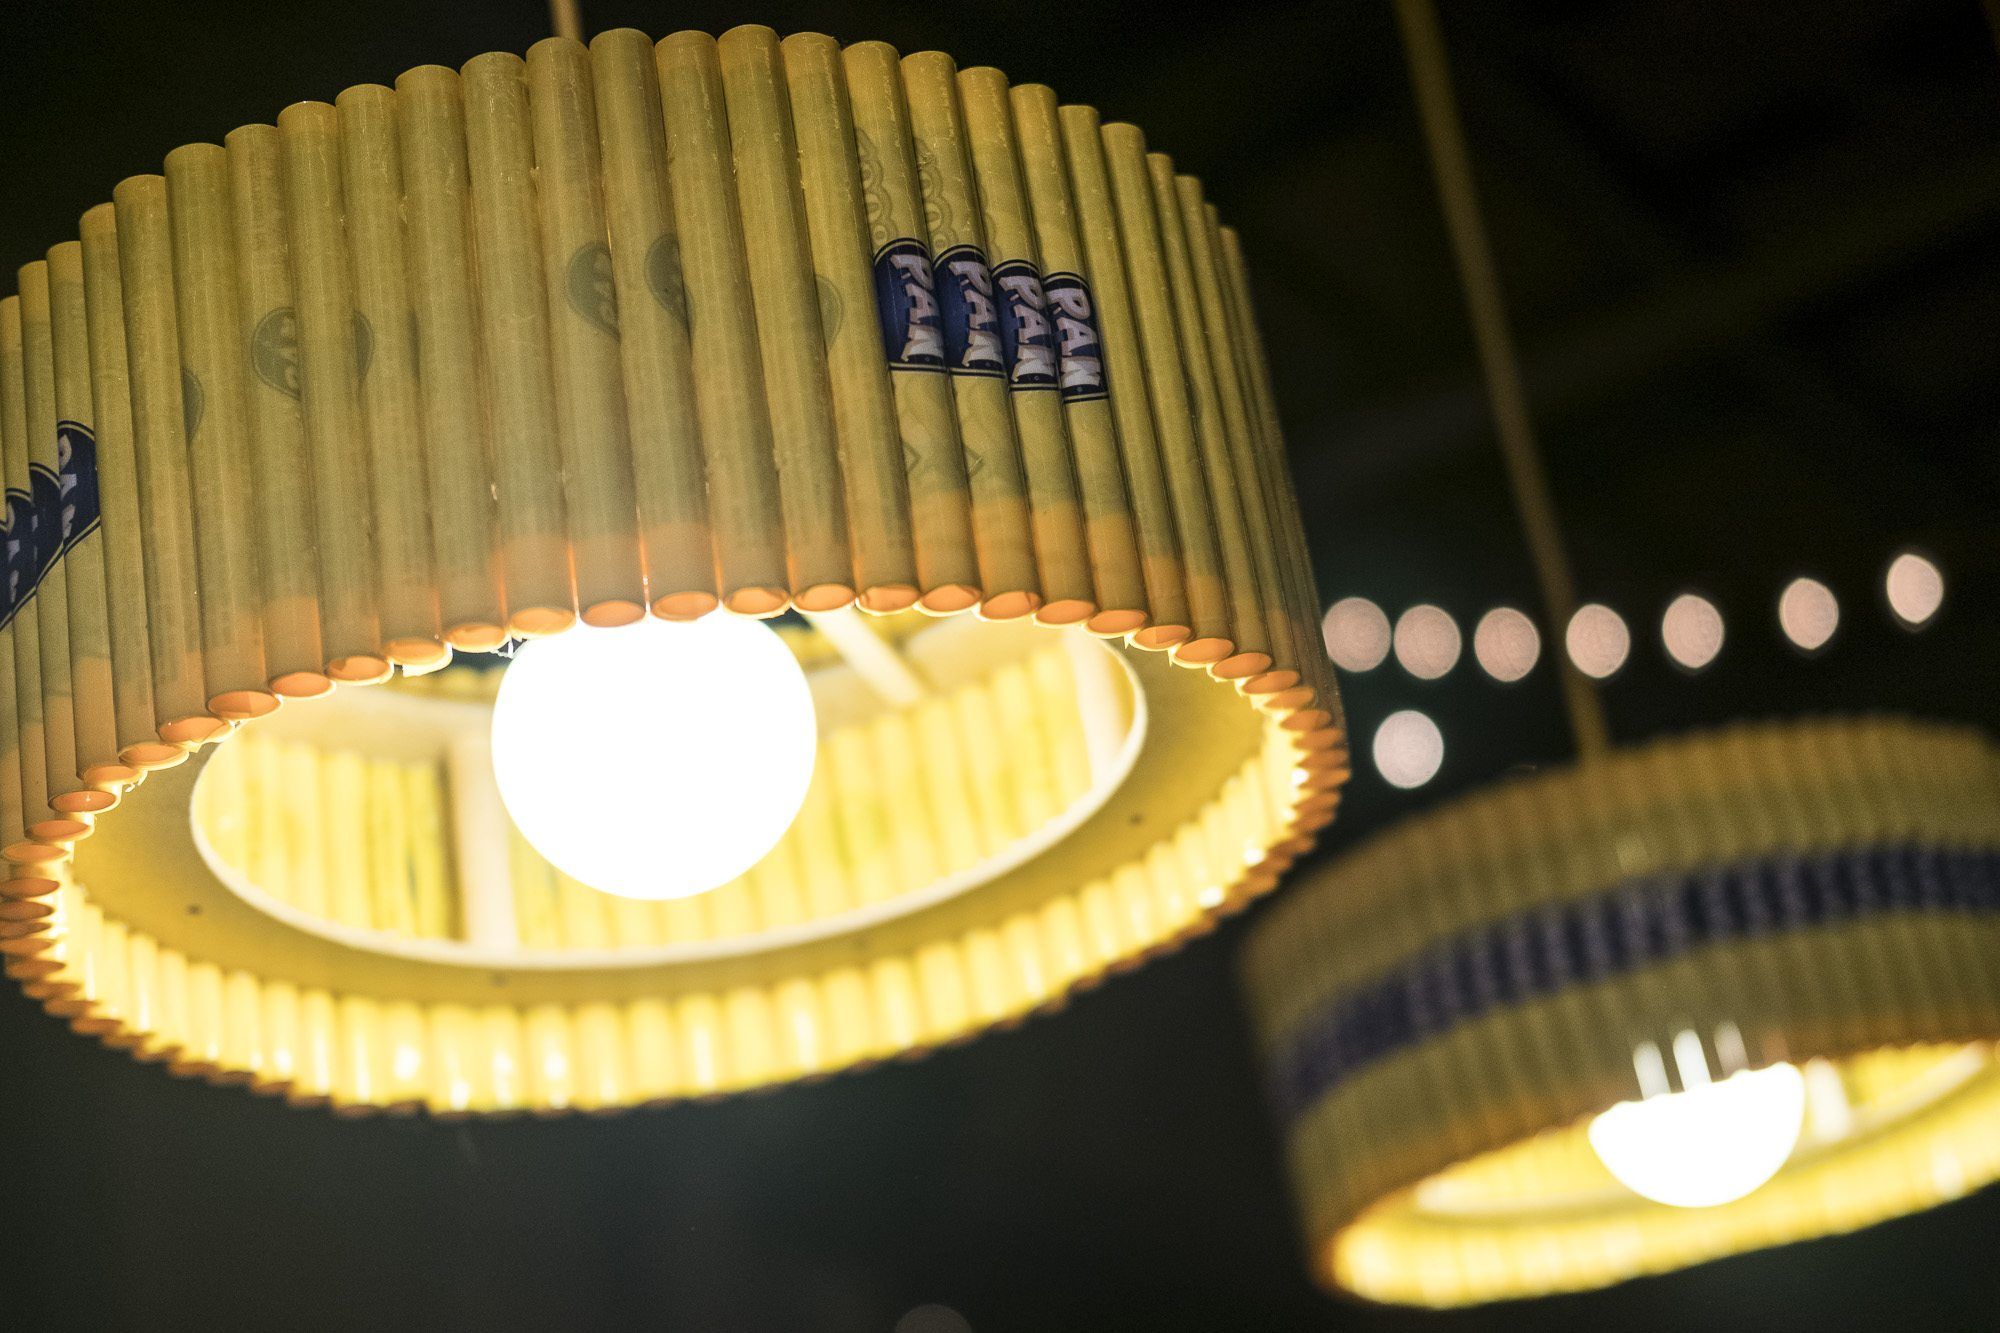 toronto-food-events-trashed-and-wasted-all-garbage-artscape-wychwood-barns-arepa-cafe-lamps